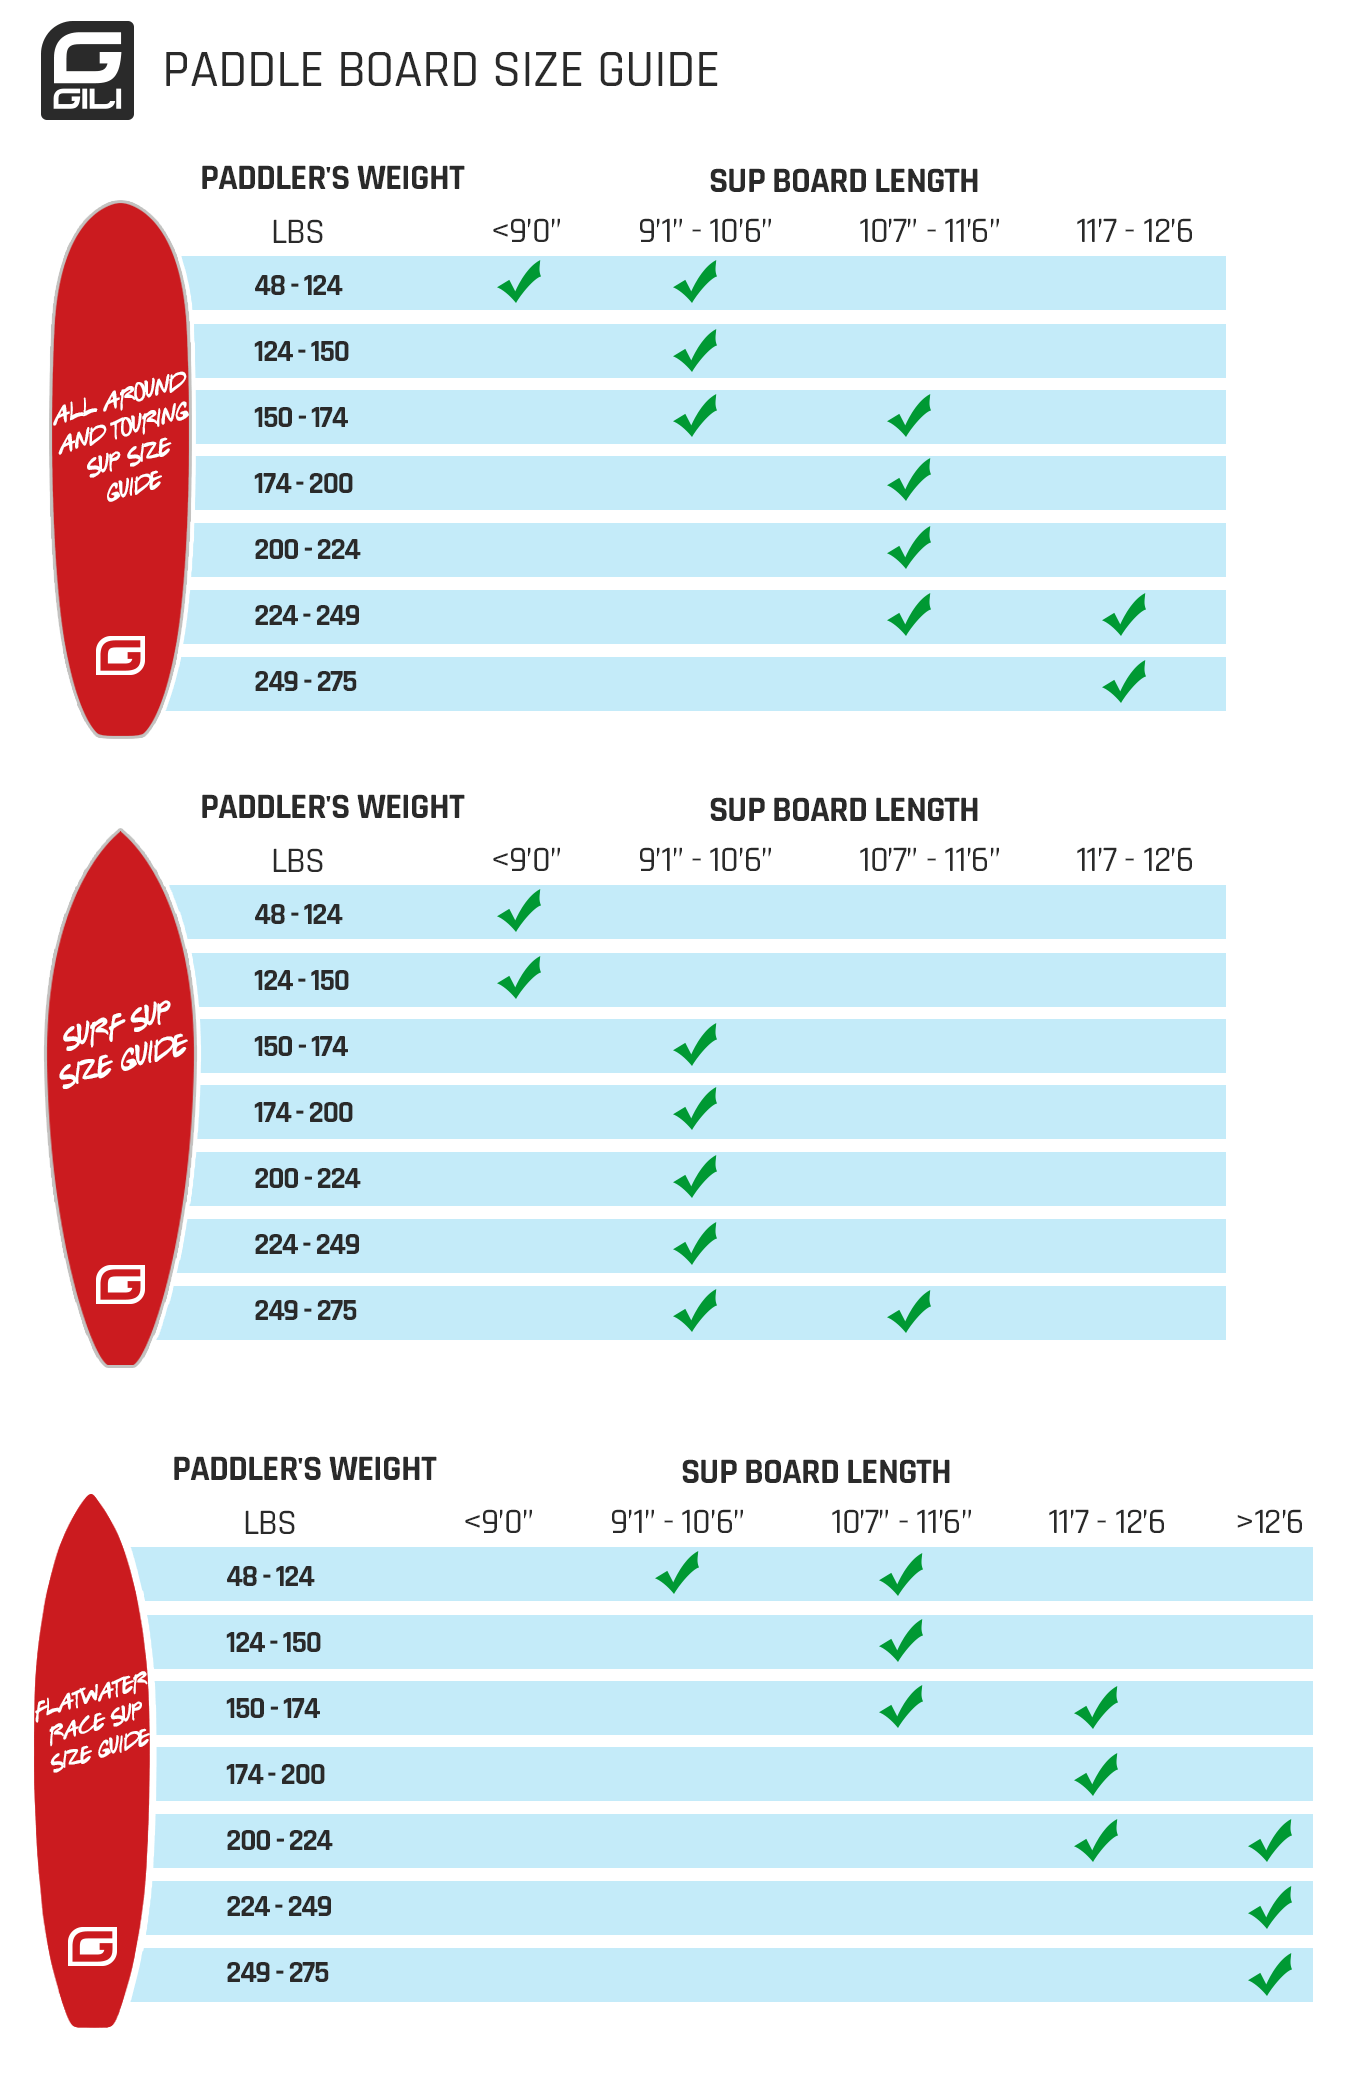 Paddle Board Size Guide